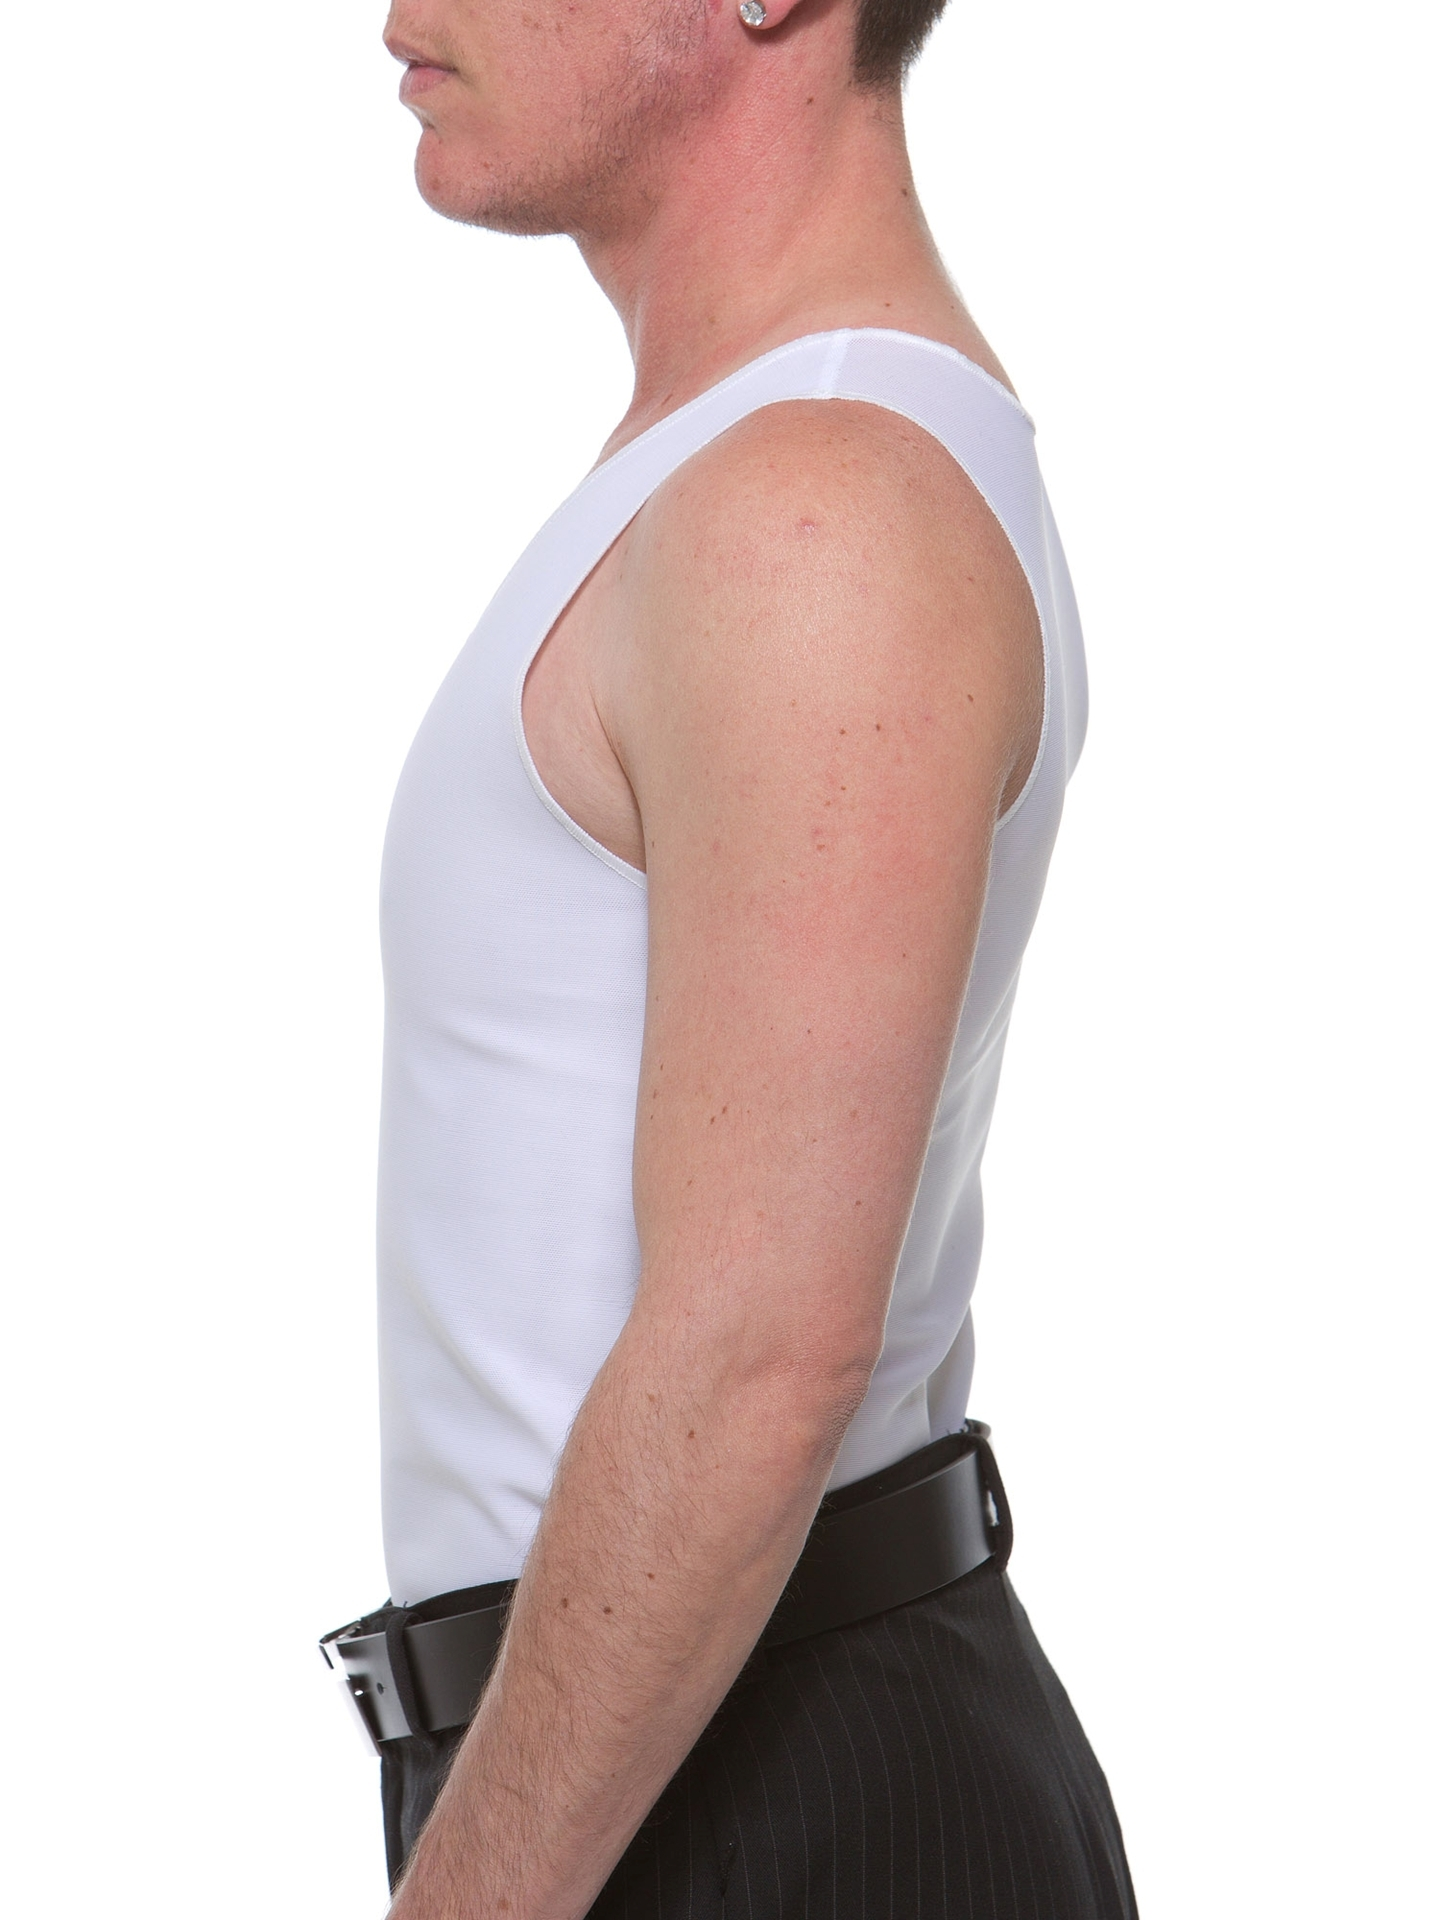 Underworks FTM High compression chest binder to flatten the chest safely and effectively